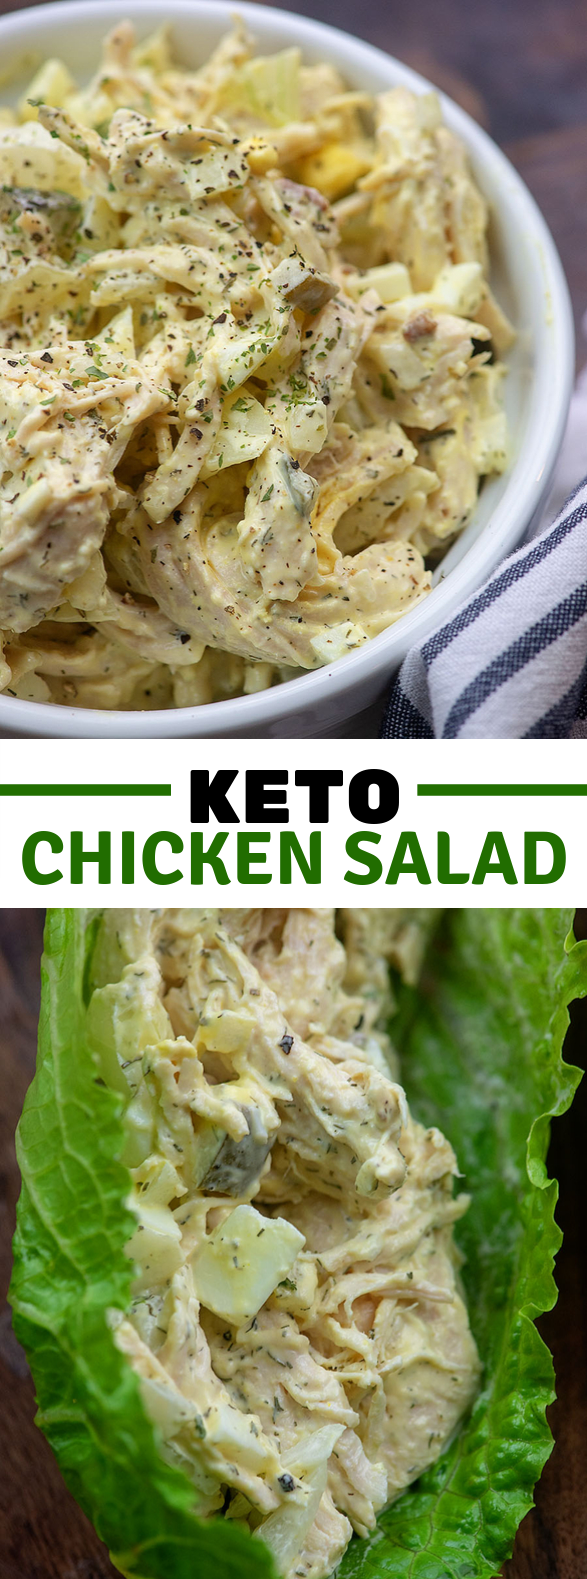 KETO CHICKEN SALAD #lowcarb #healthy